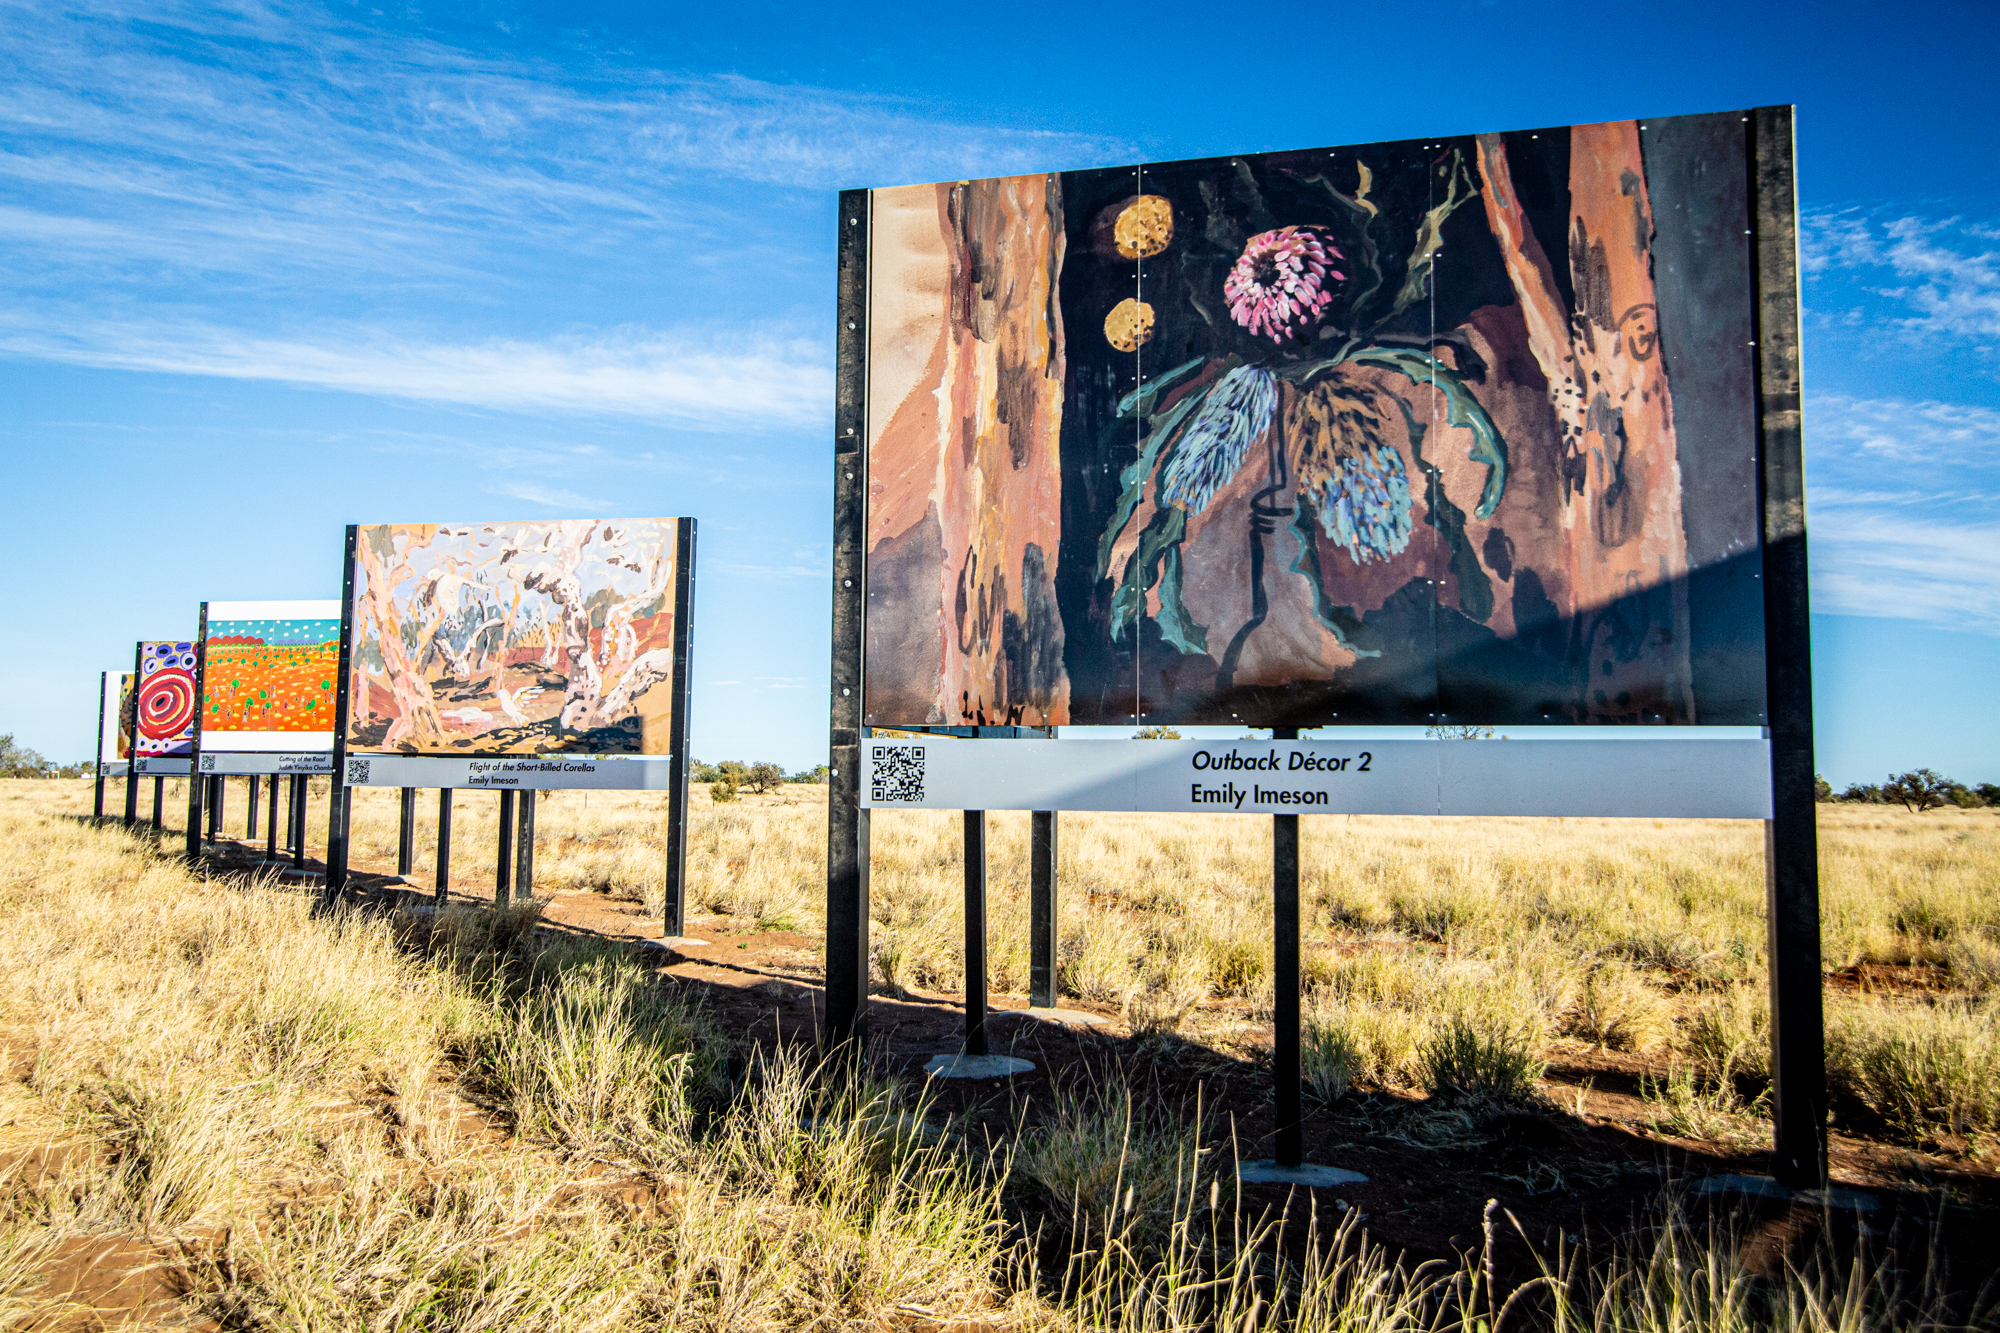 Picture of artwork on billboards